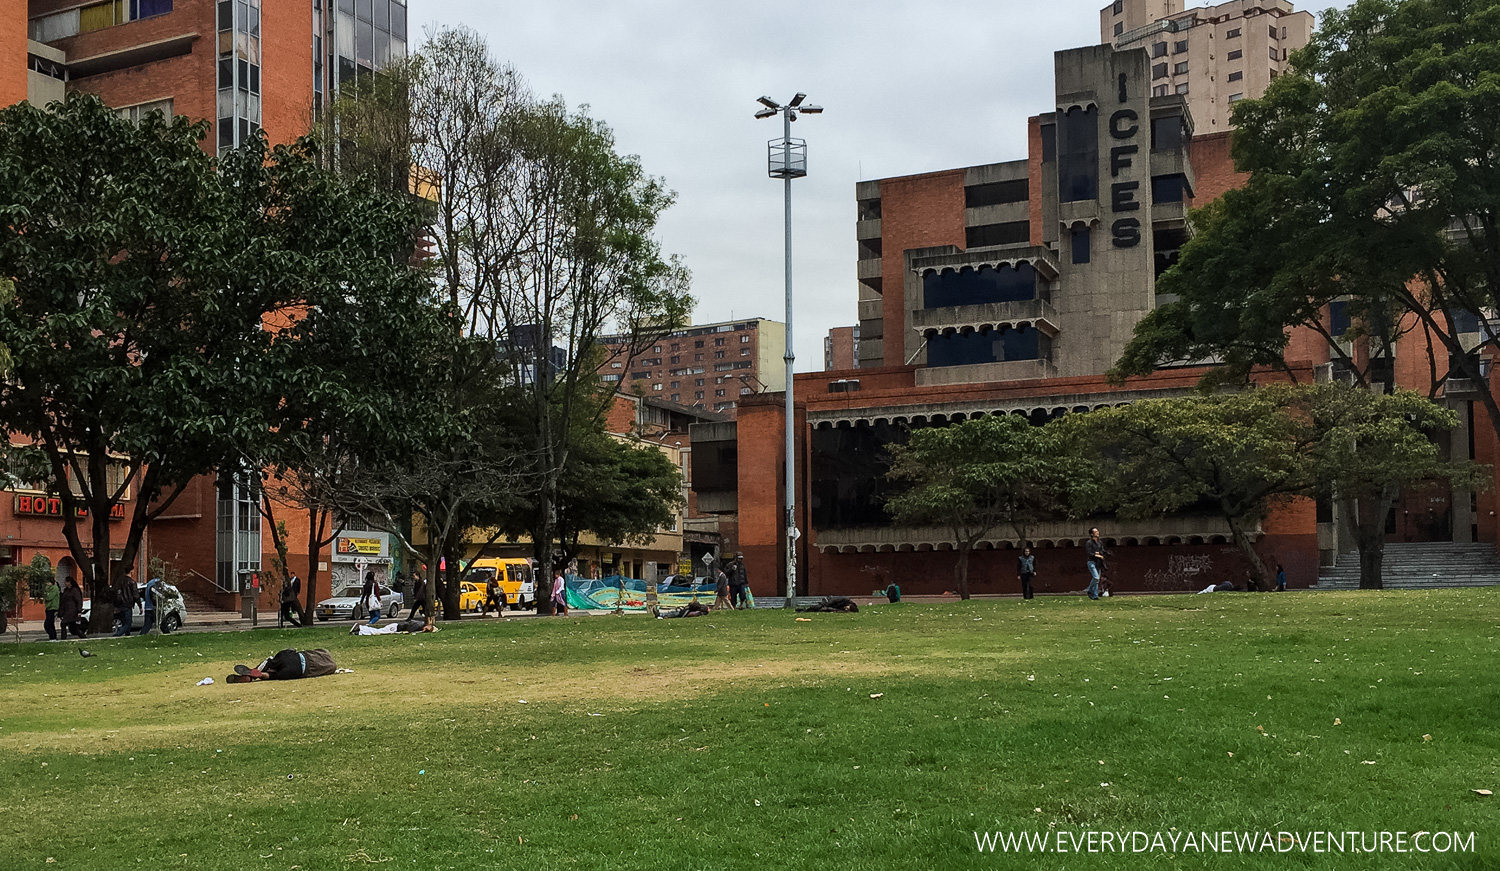 The main square/park in Bogota, and all of its homeless sleepers.